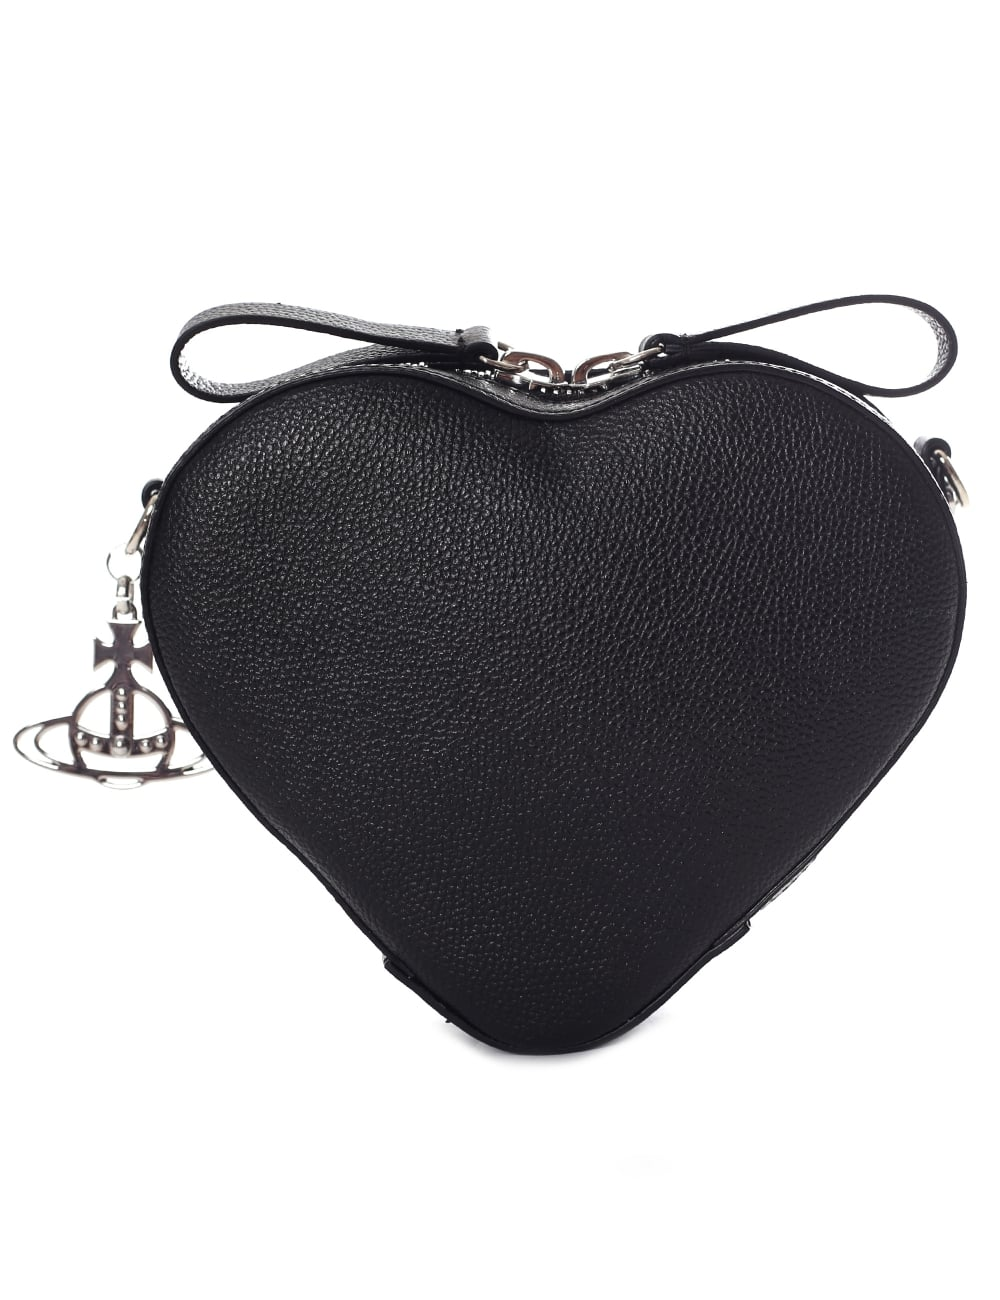 dd2a2ec47c0 Vivienne Westwood Women's Johanna Heart Crossbody Bag Black